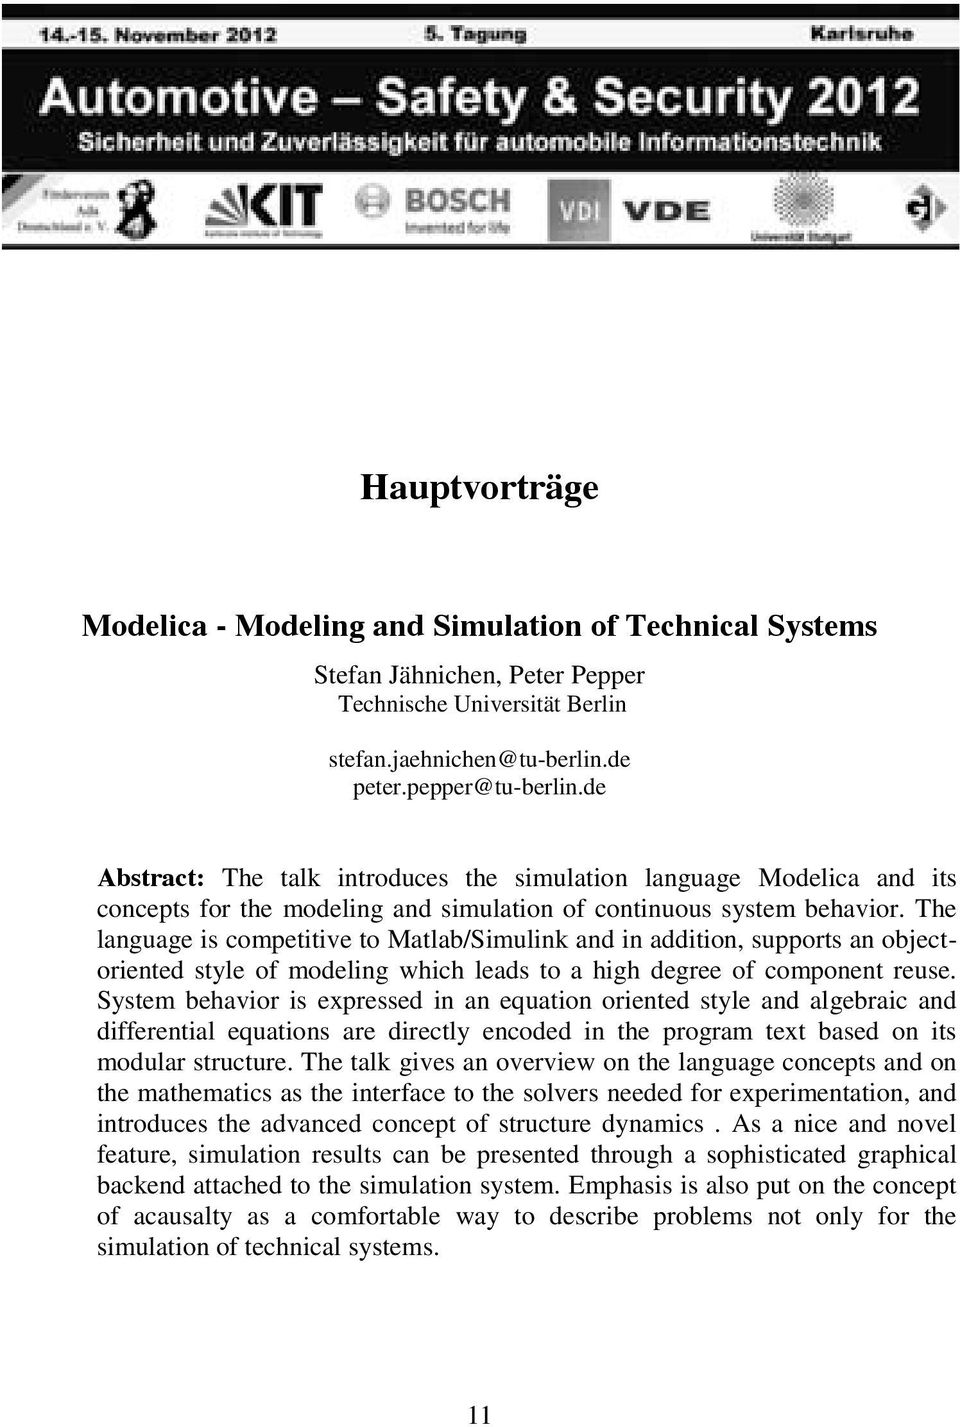 The language is competitive to Matlab/Simulink and in addition, supports an objectoriented style of modeling which leads to a high degree of component reuse.